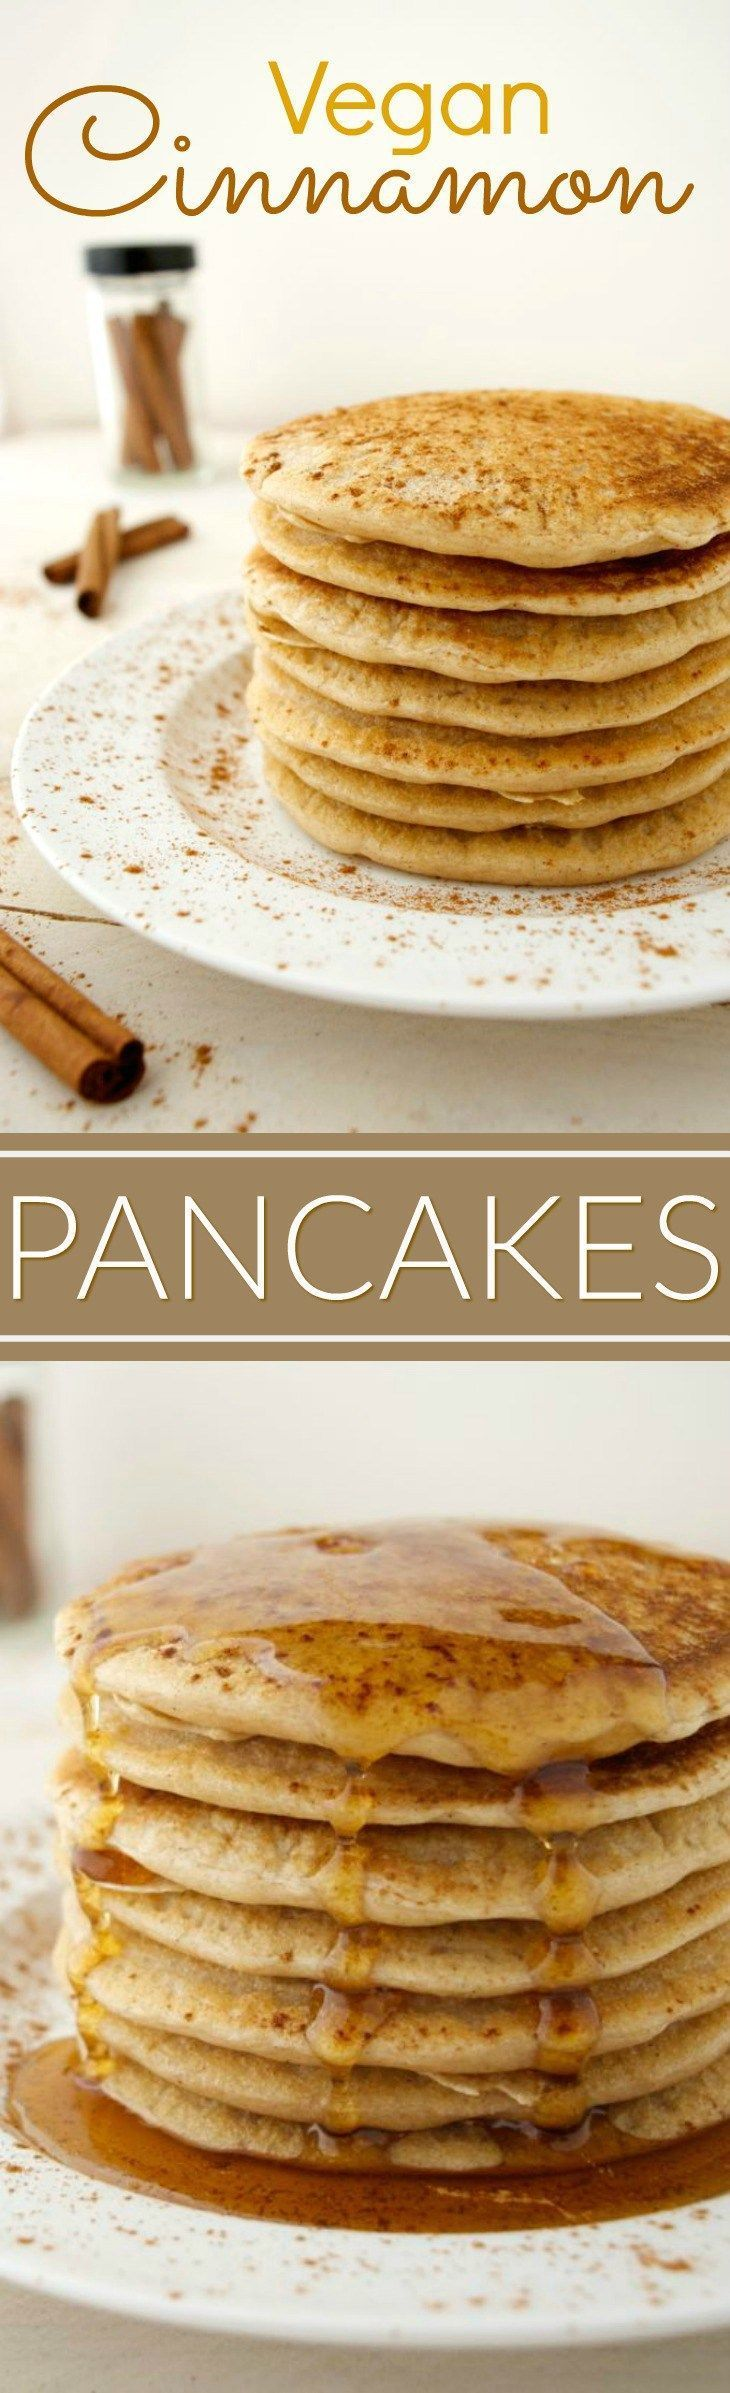 Vegan cinnamon pancakes are the perfect weekend breakfast! They're warm, light, fluffy and taste similar to a cinnamon roll. Add some chocolate chips to the batter for a chocolatey twist. They're easy to make and require only 9 simple ingredients!